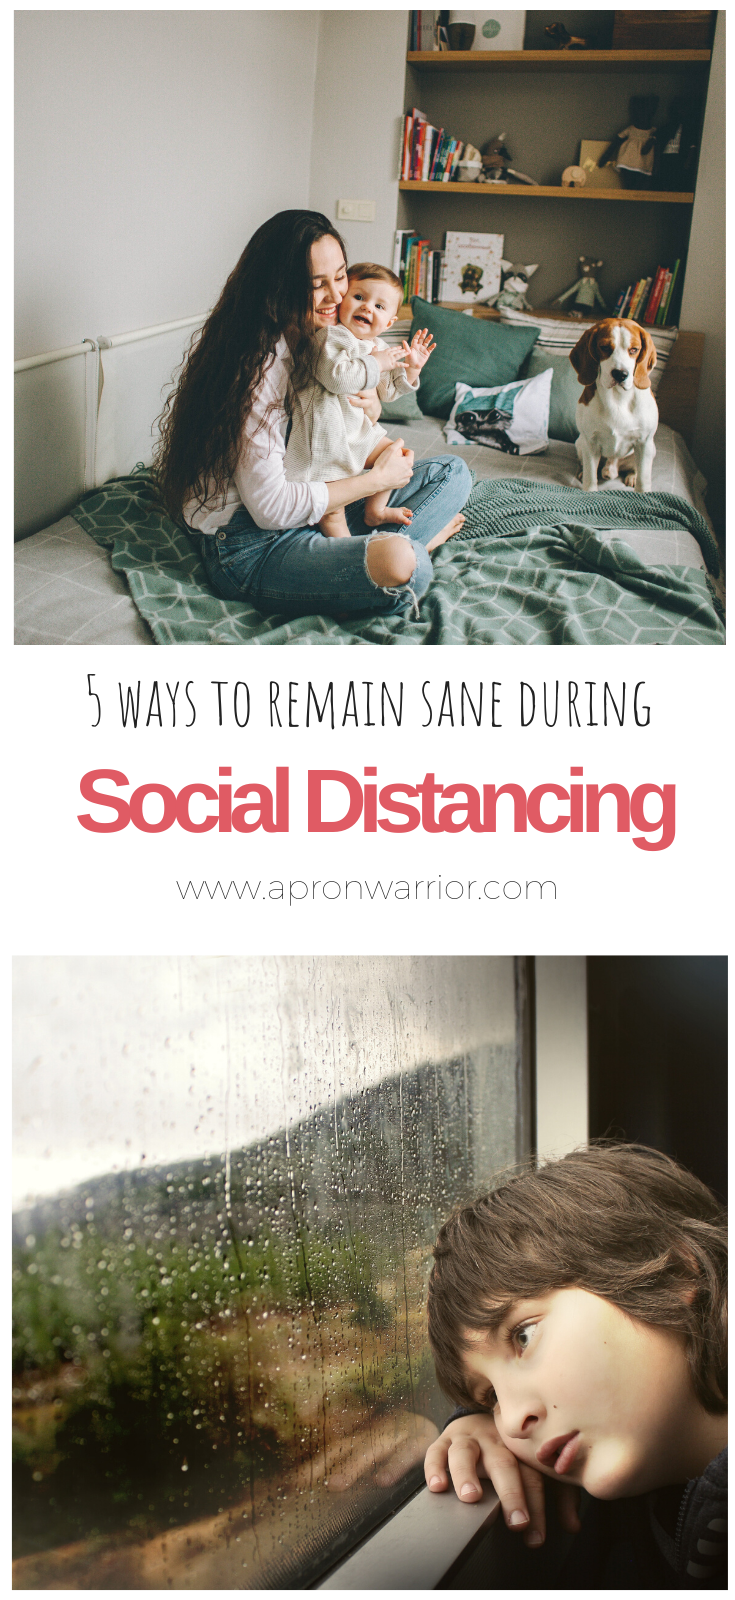 Social Distancing driving you crazy? Check out these tips to help!